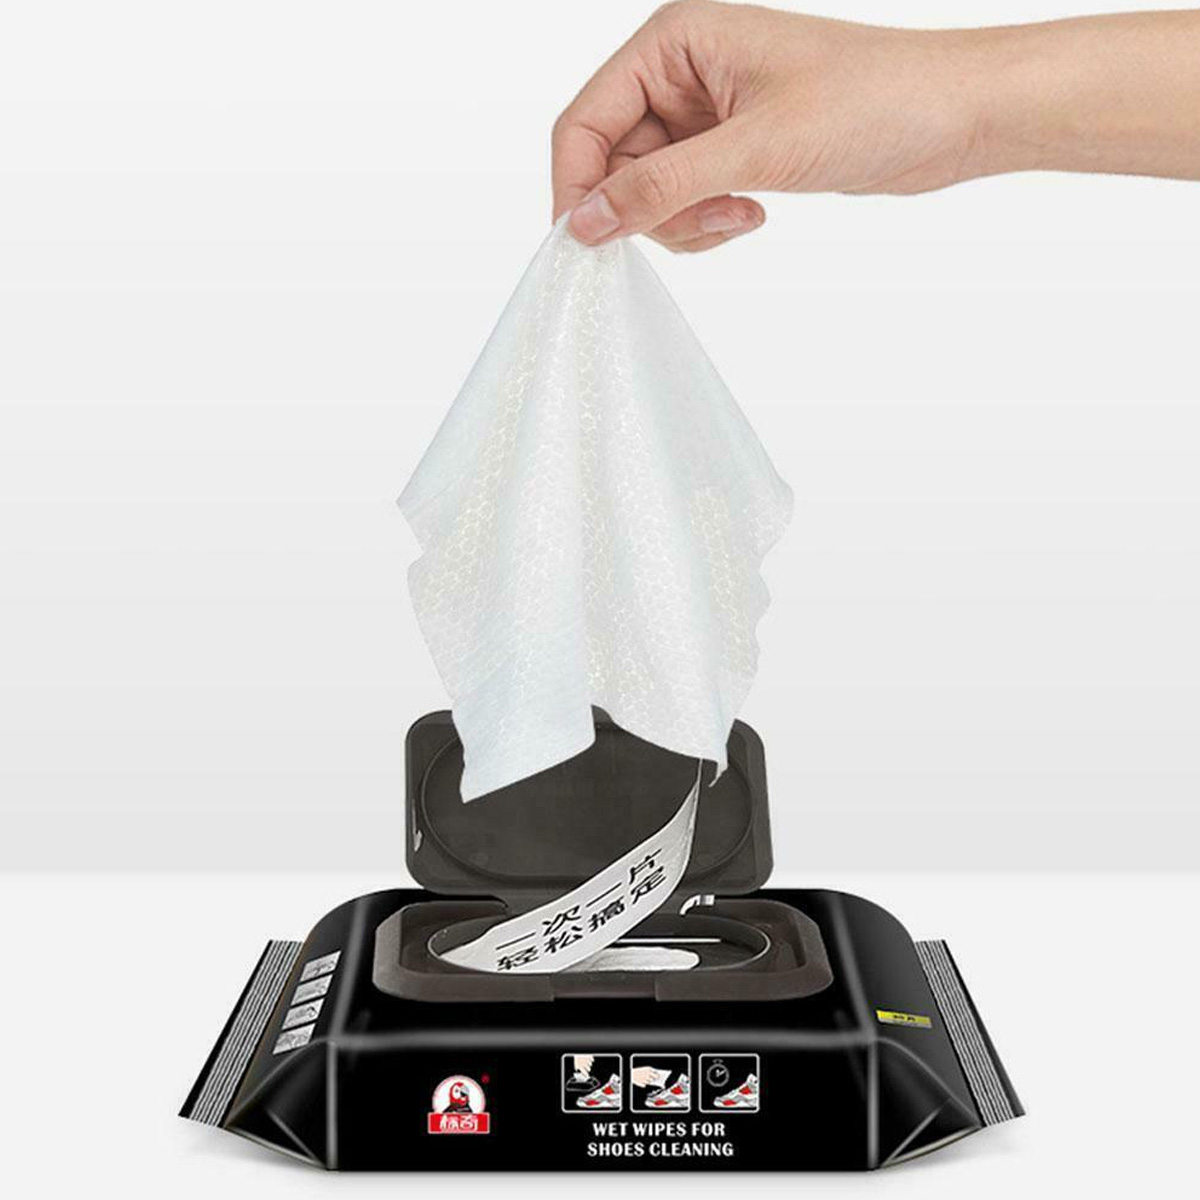 Wet Wipes White Shoes Artifact Travel Portable Disposable Sneakers Cleaning Wet Wipes Paper Bag